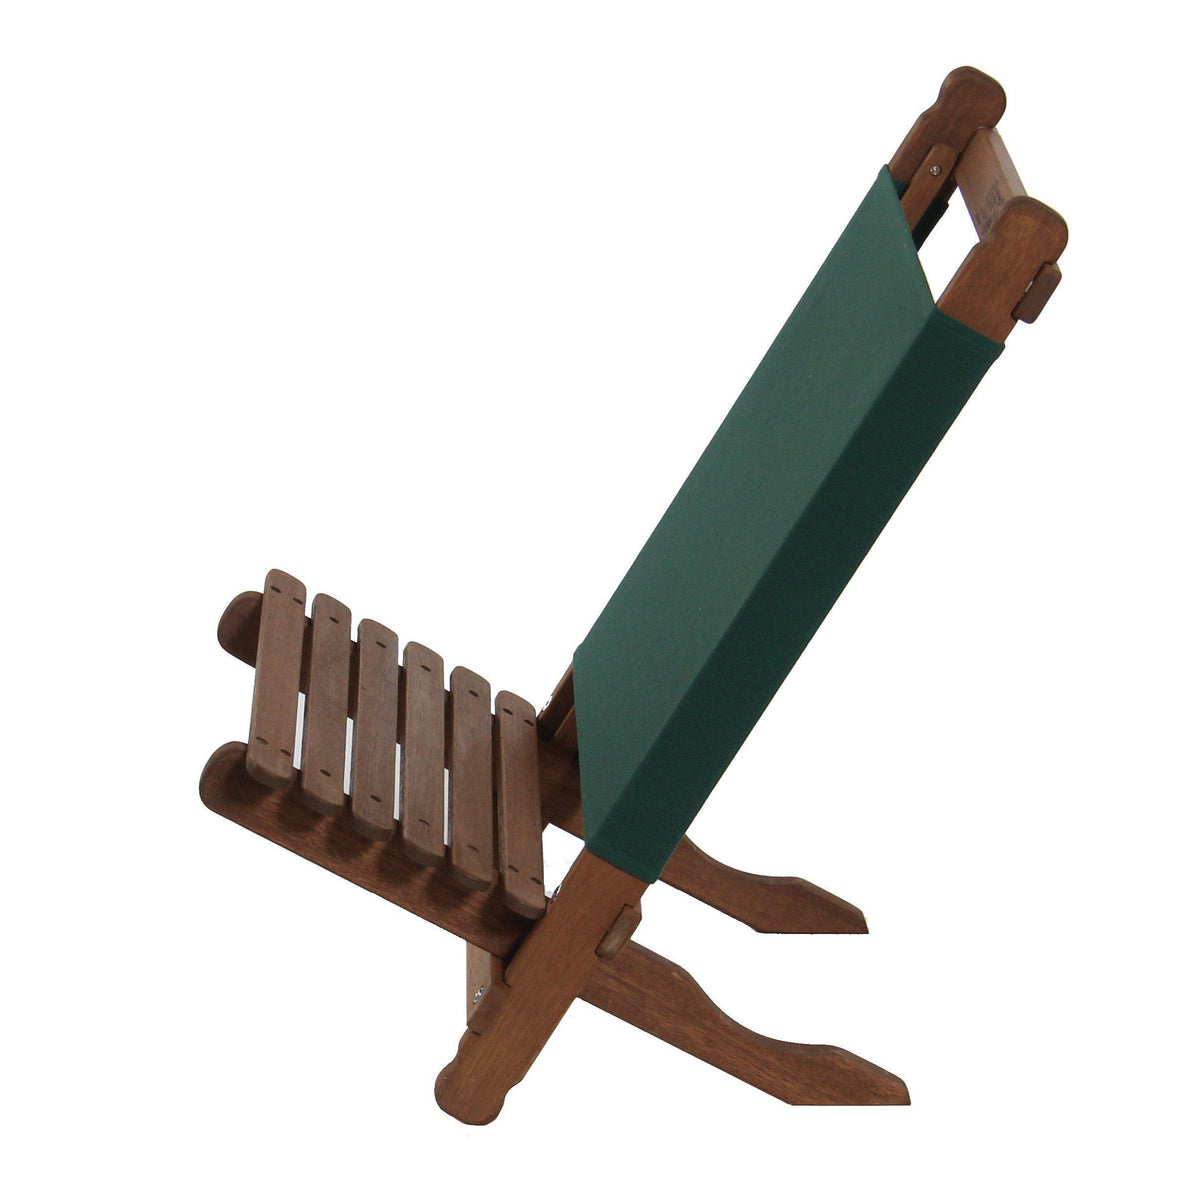 Pangean Lounger, from Byer of Maine